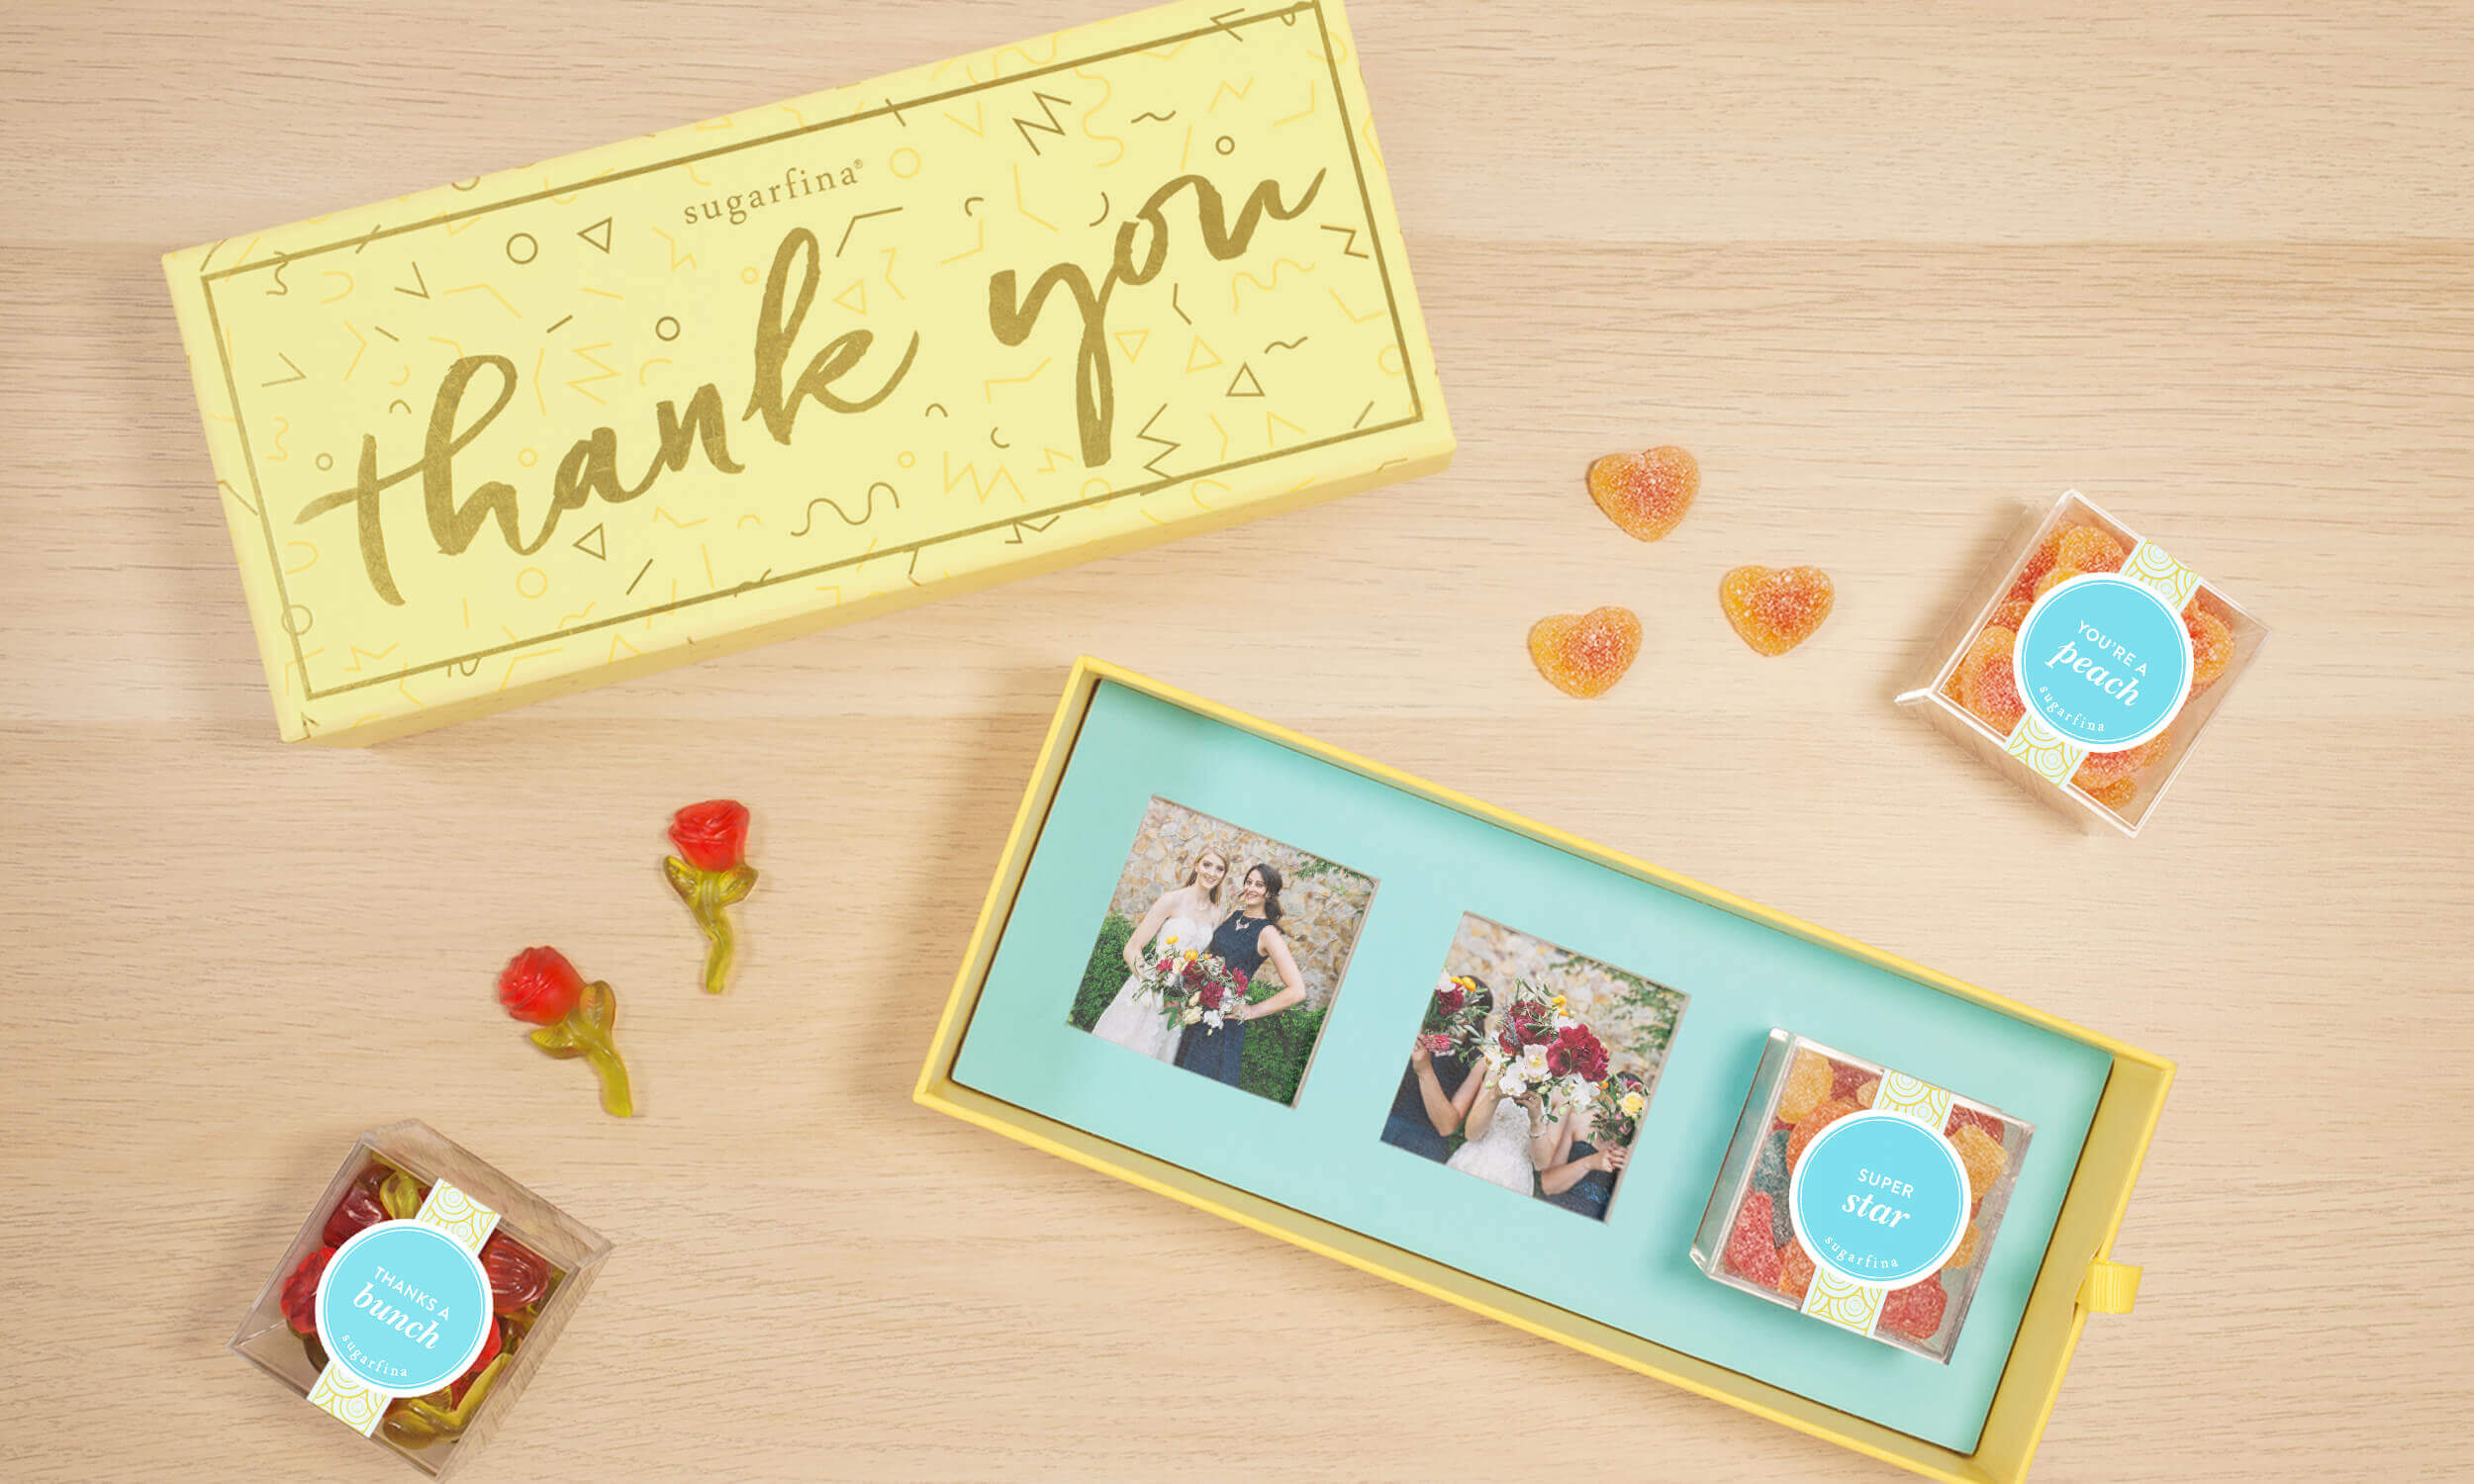 HOW TO TURN YOUR SUGARFINA CANDY BENTO BOX INTO THE PERFECT, PERSONALIZED THANK YOU GIFT